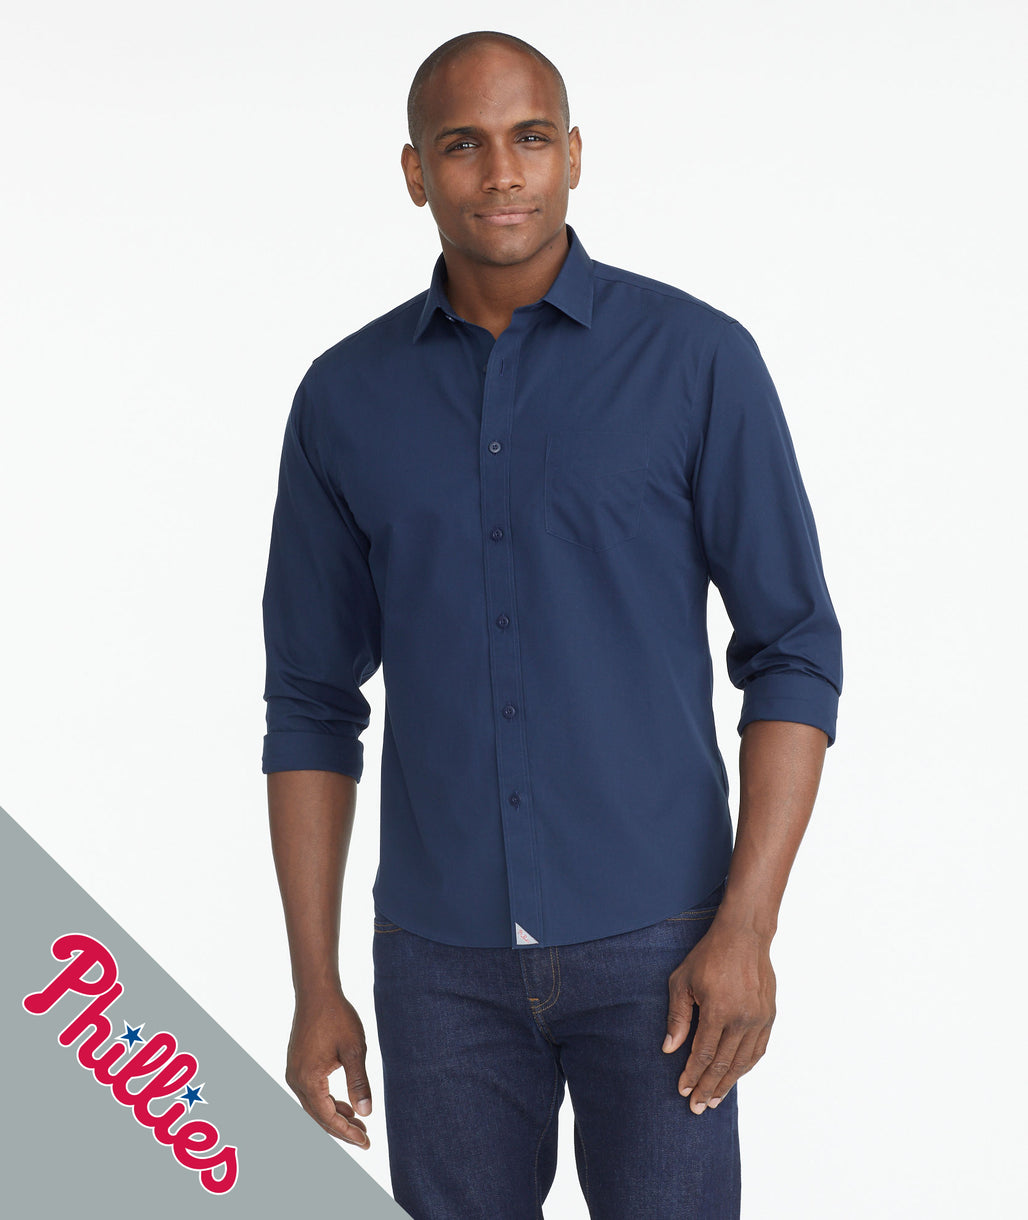 Model wearing a Navy Phillies Signature Series Button-Down